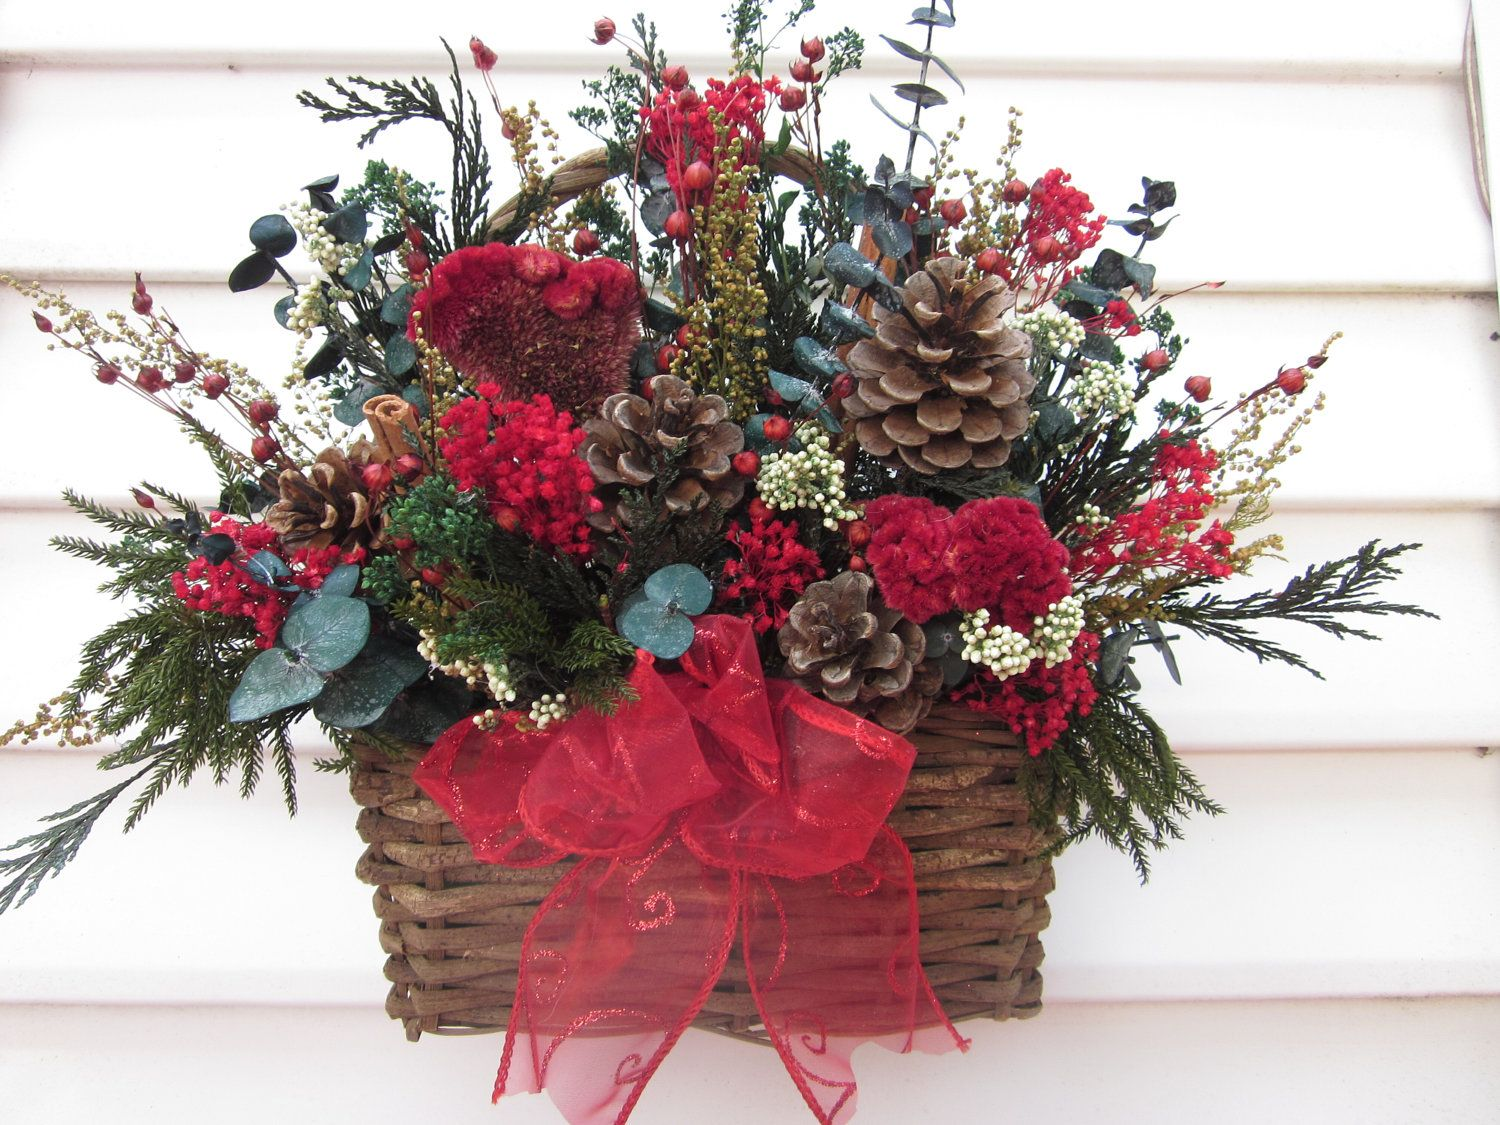 Rustic Basket Dried Flower Wall Arrangement Christmas Flowers Christmas Flower Arrangements Christmas Flowers Christmas Floral